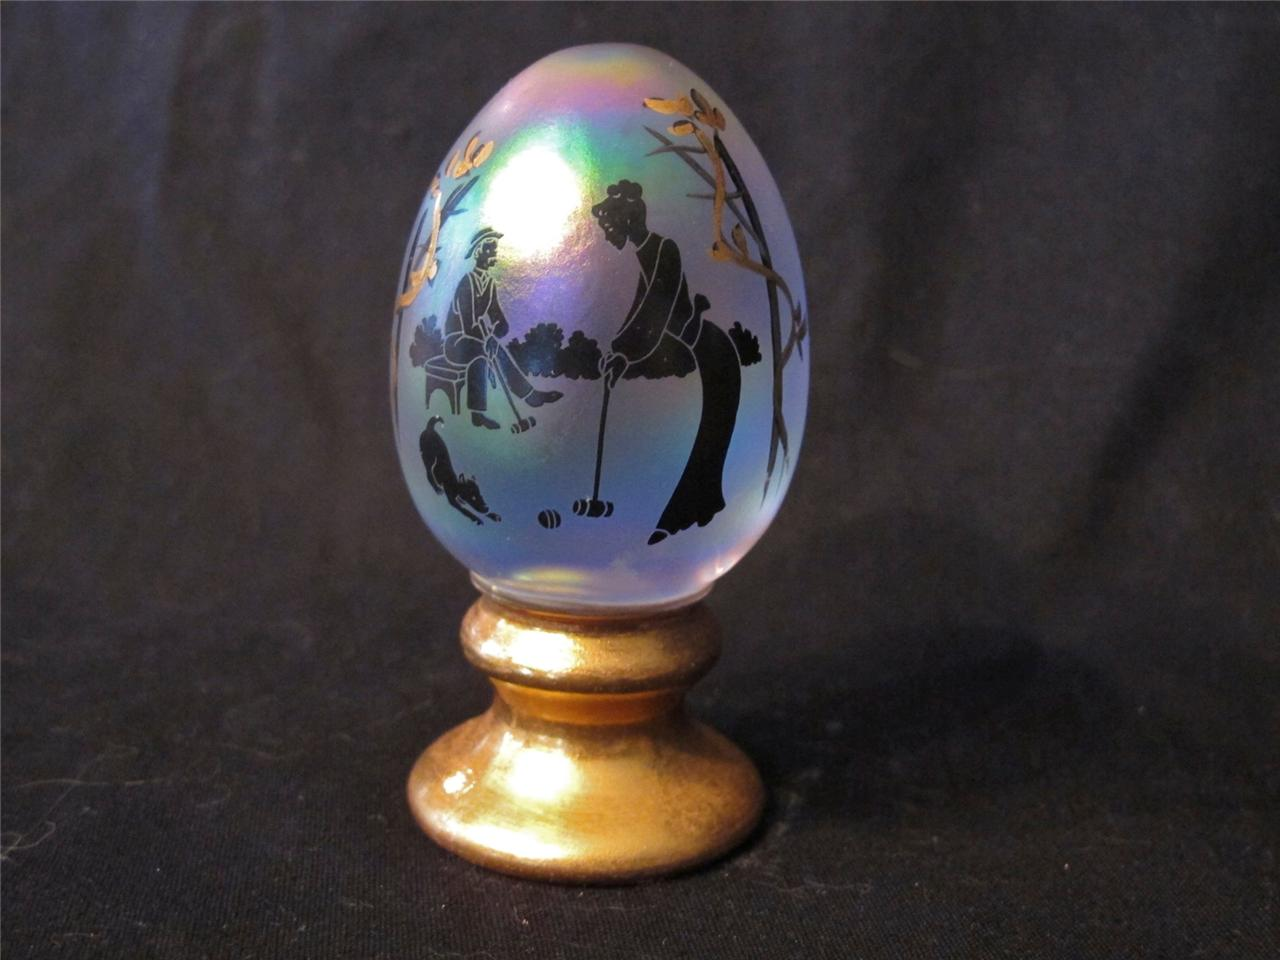 Fenton White Carnival Glass Silhouette Egg Paperweight Carnival Glass